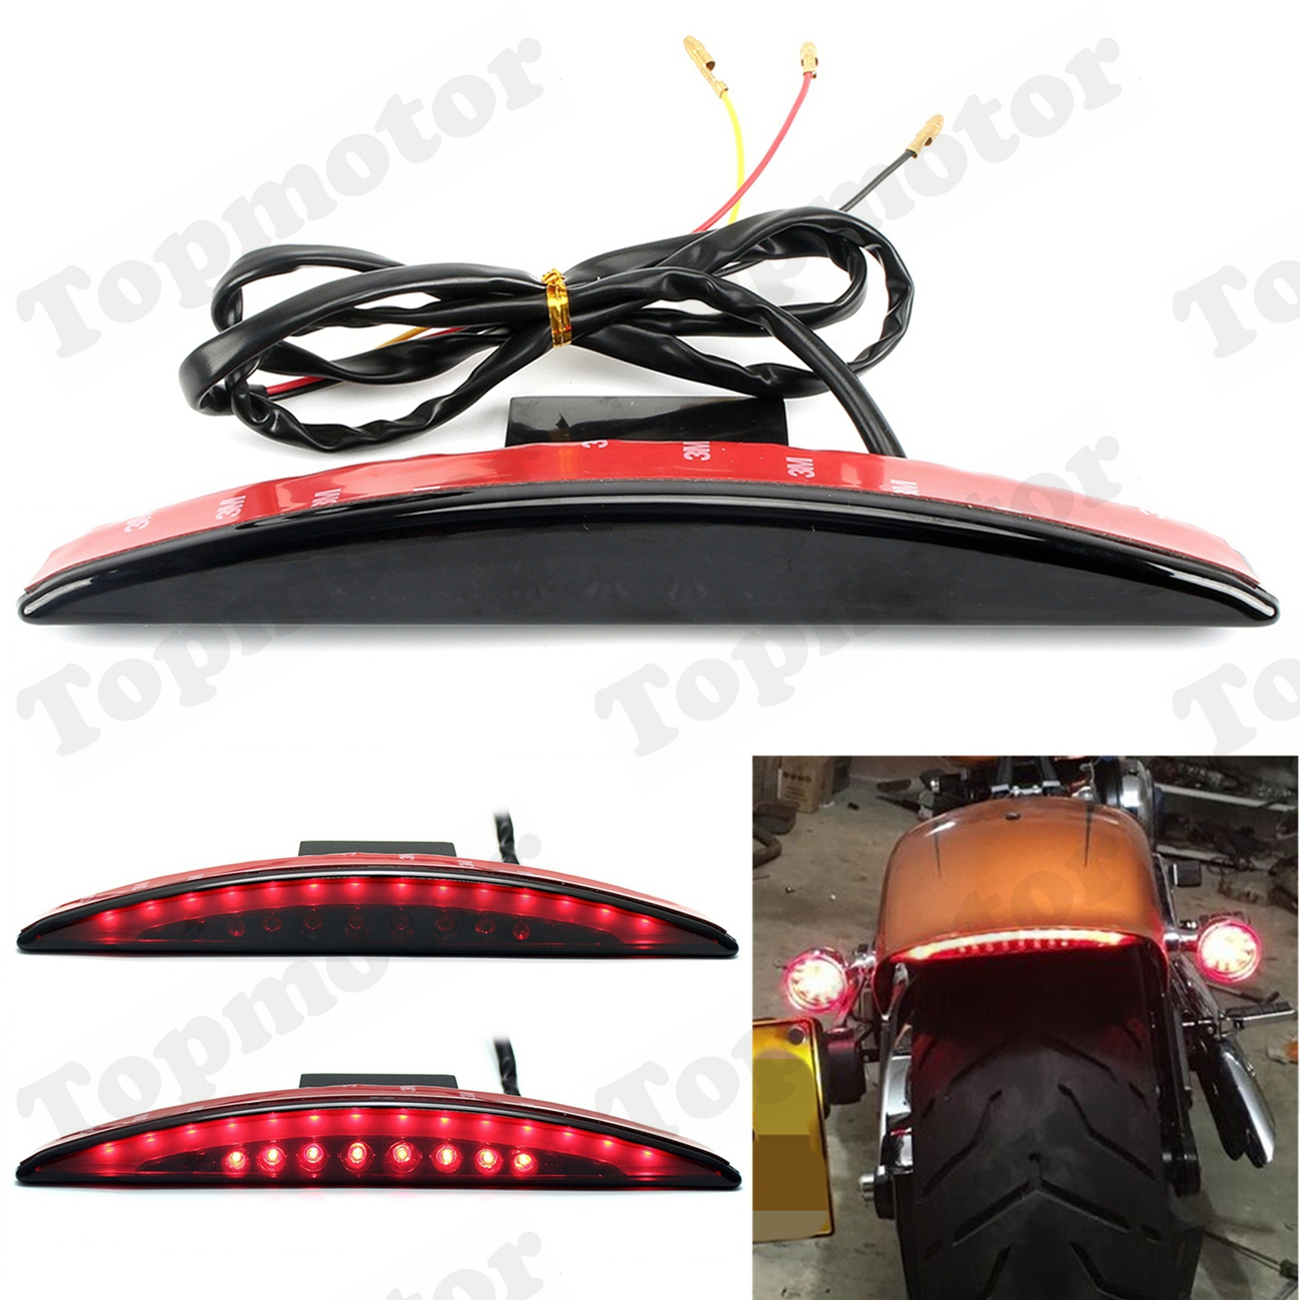 UNDEFINED Motorcycle Accessories Smoke Rear Fender Tip LED Brake Tail Light Lamp For Harley Breakout FXSB 2013 2014 2015 - 2017